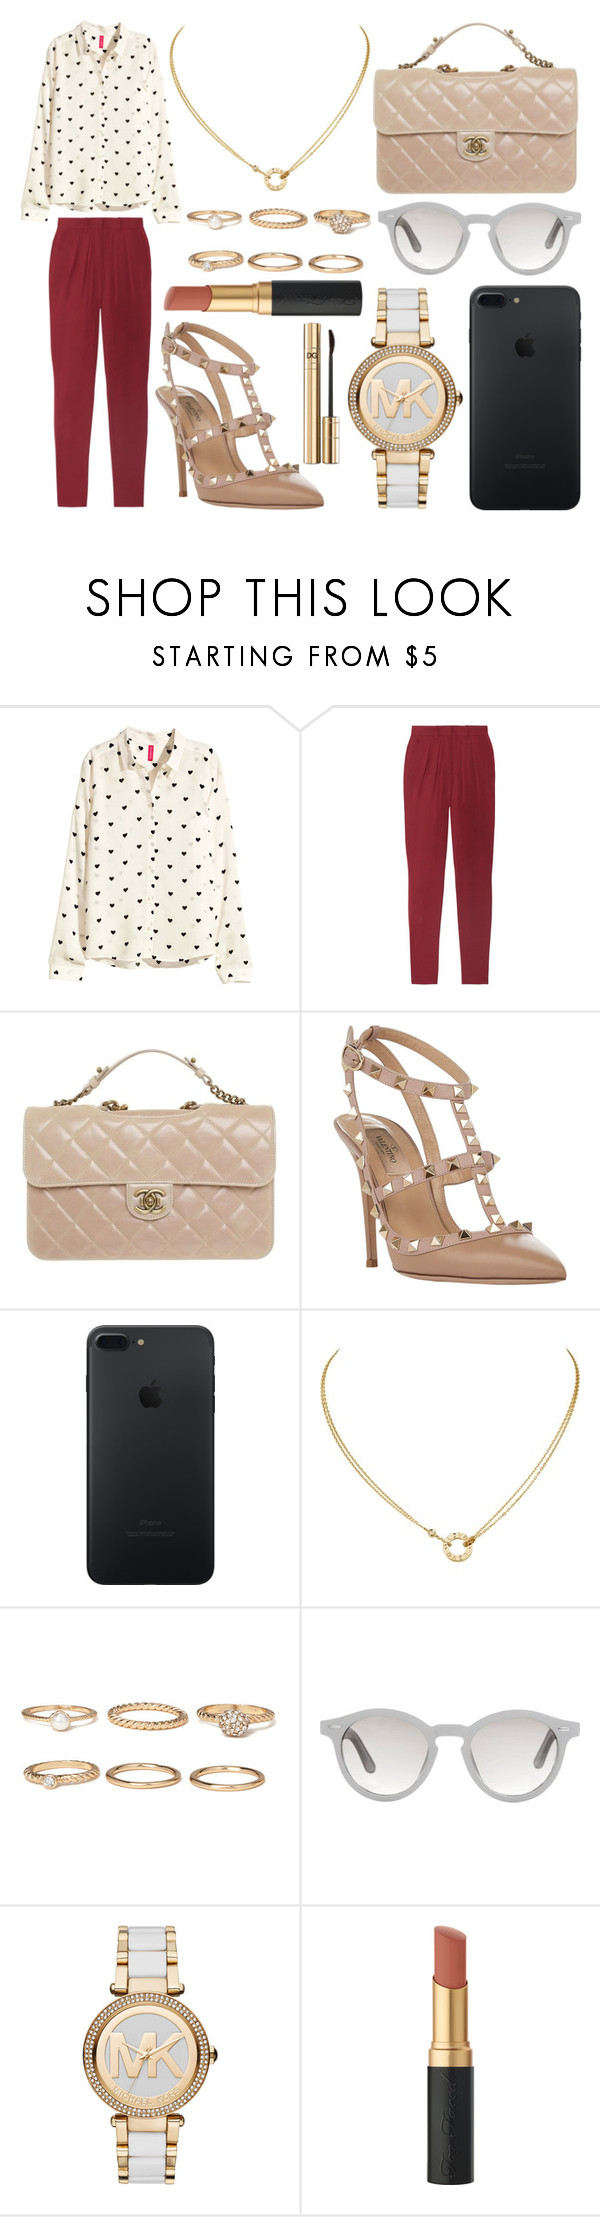 """""""405."""" by plaraa on Polyvore featuring moda, H&M, Isabel Marant, Chanel, Valentino, Cartier, Forever 21, Linda Farrow, MICHAEL Michael Kors y Dolce&Gabbana"""